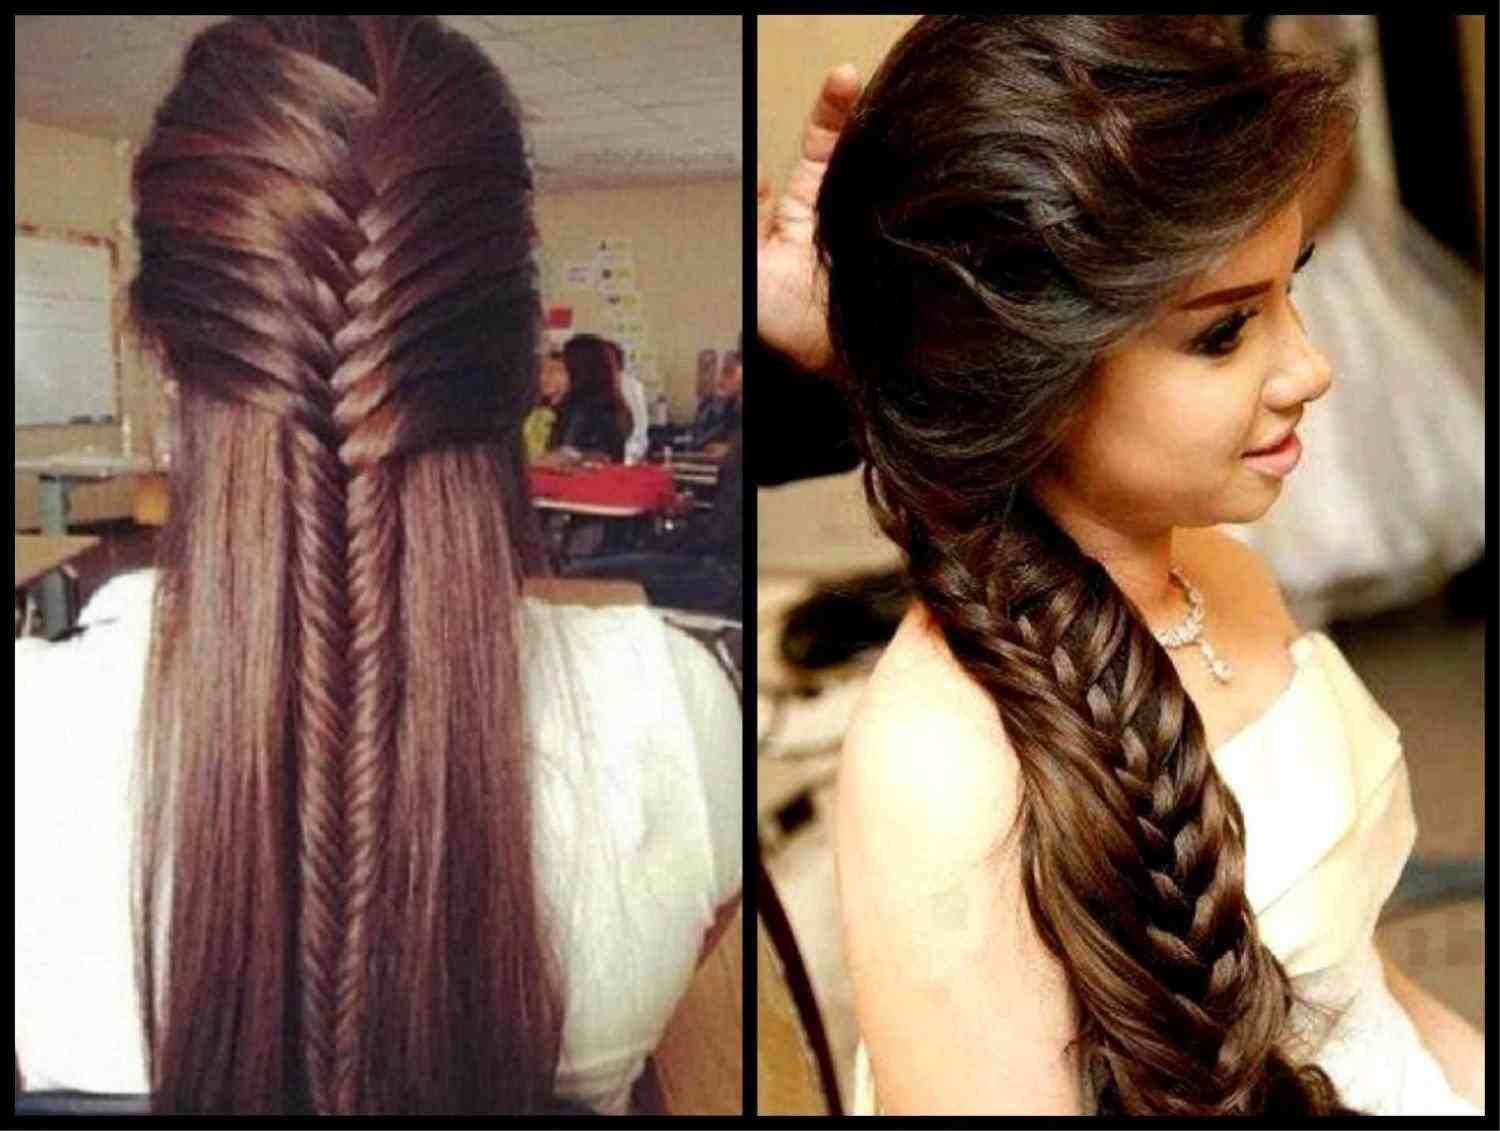 hairstyle for straight hair on saree | Long hair indian girls, Medium hair styles, Short wedding ...